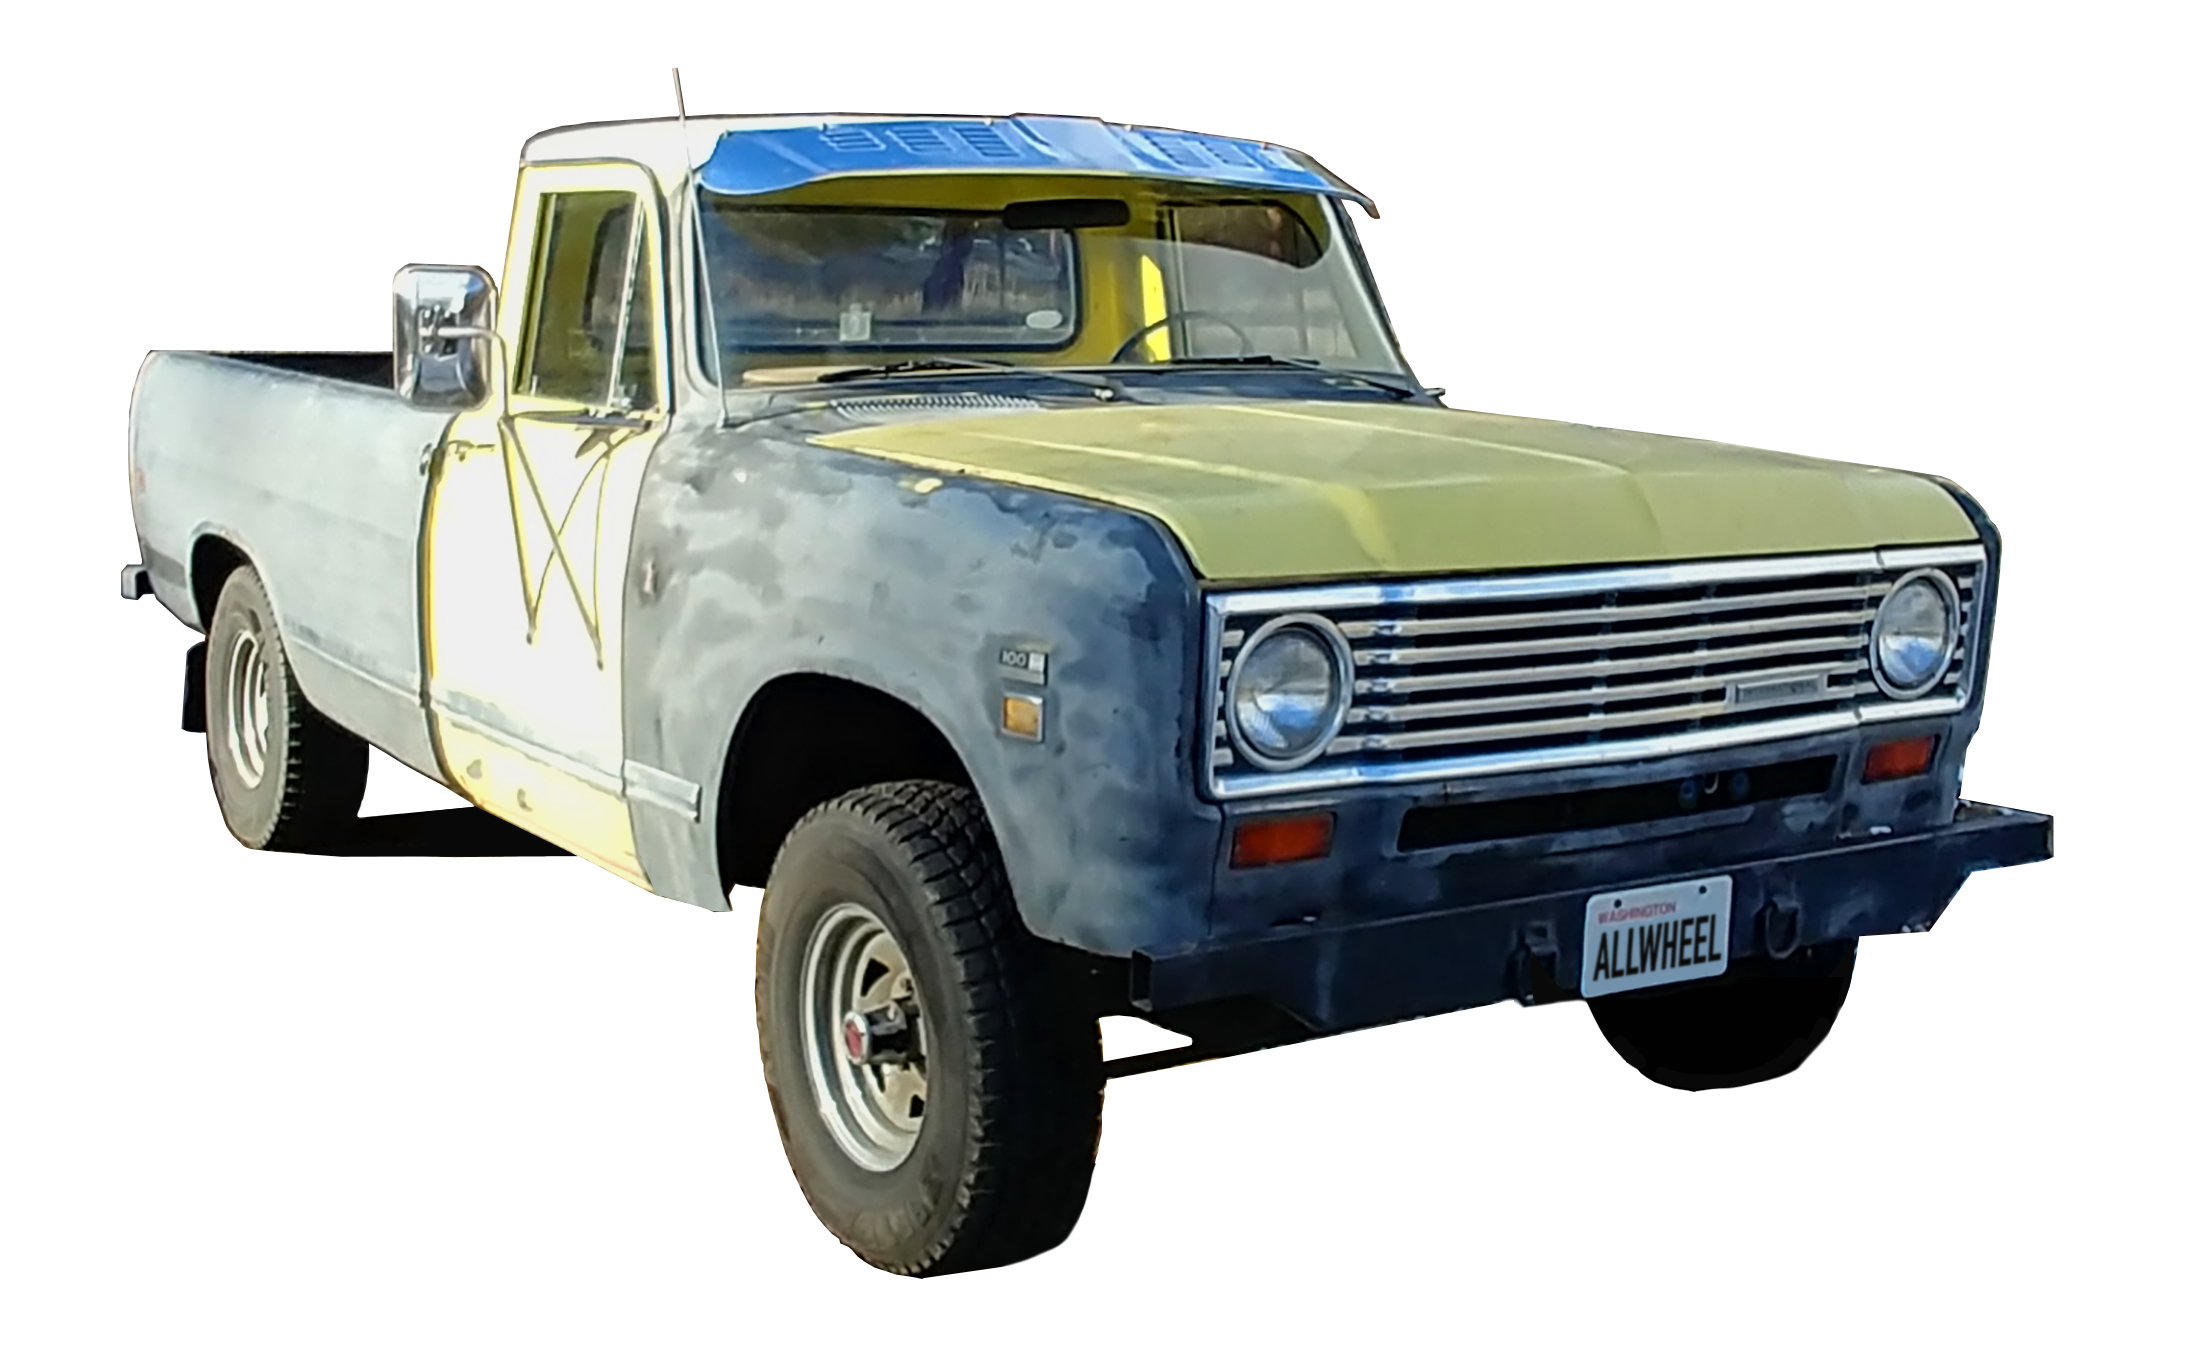 ALL WHEEL TRUCK 2019.png